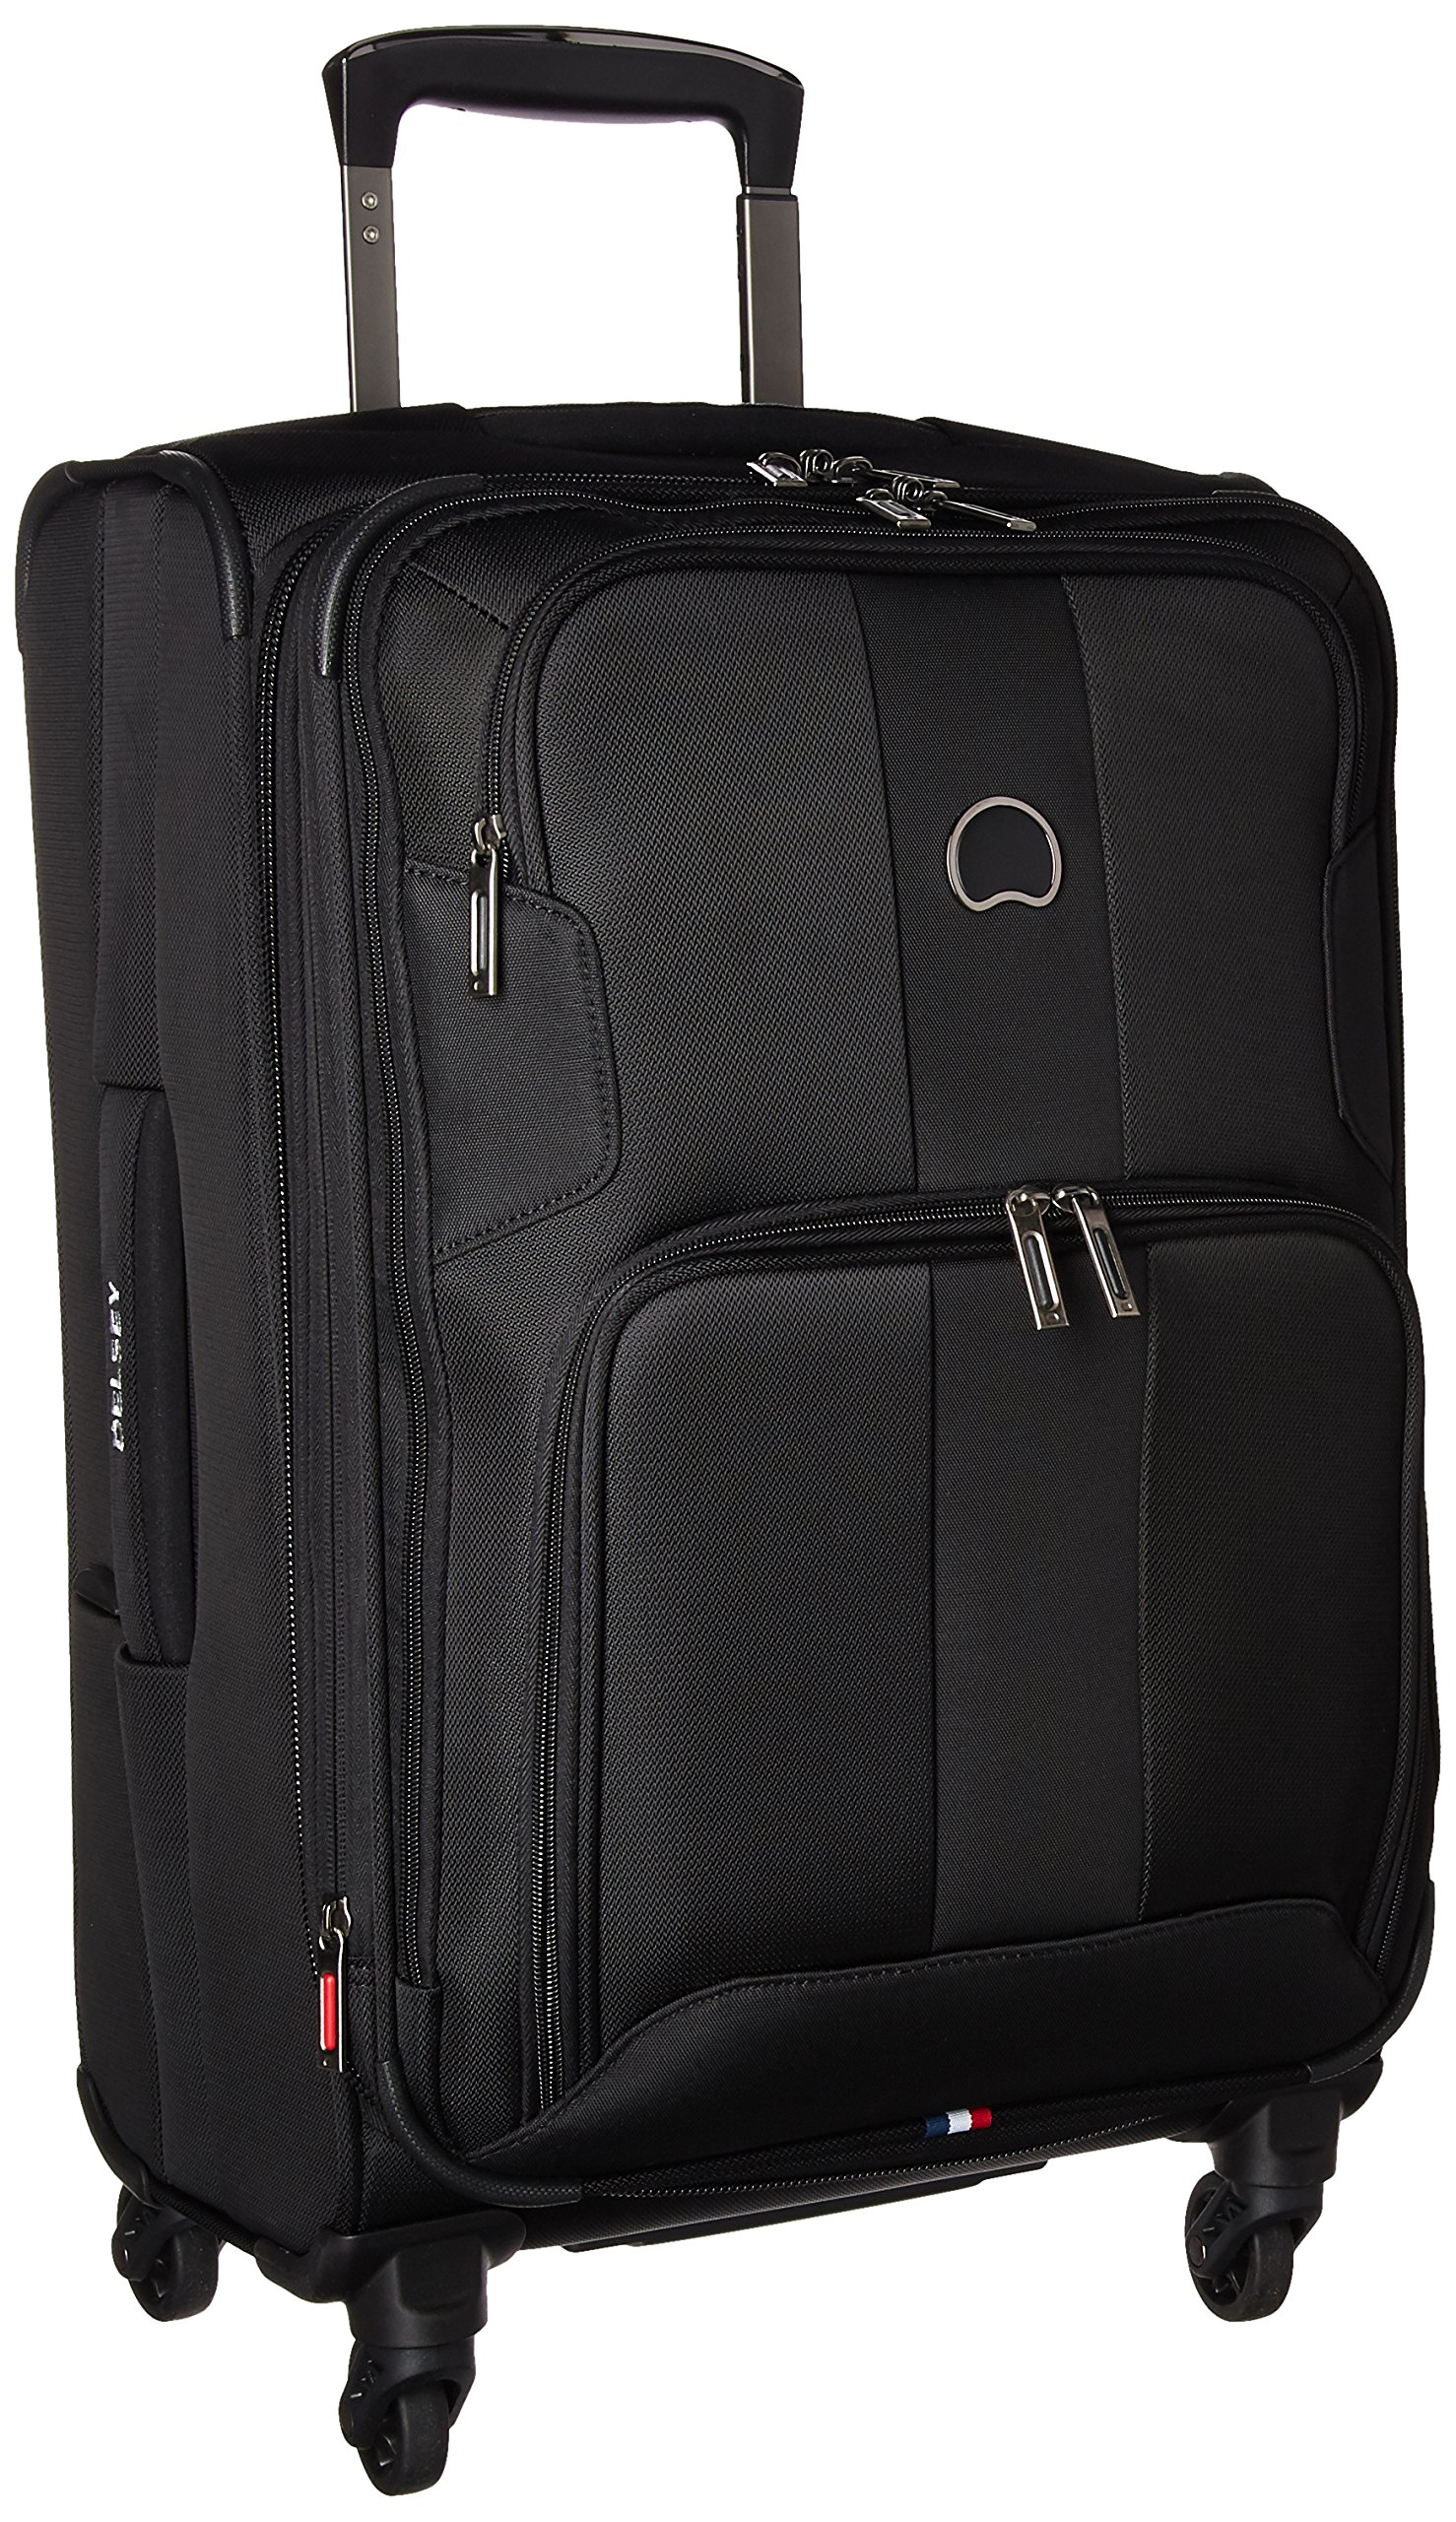 Sky Max 2.0 Softside Expandable Luggage with Spinner Wheels, Black, Carry-on 21 Inch,40328280500